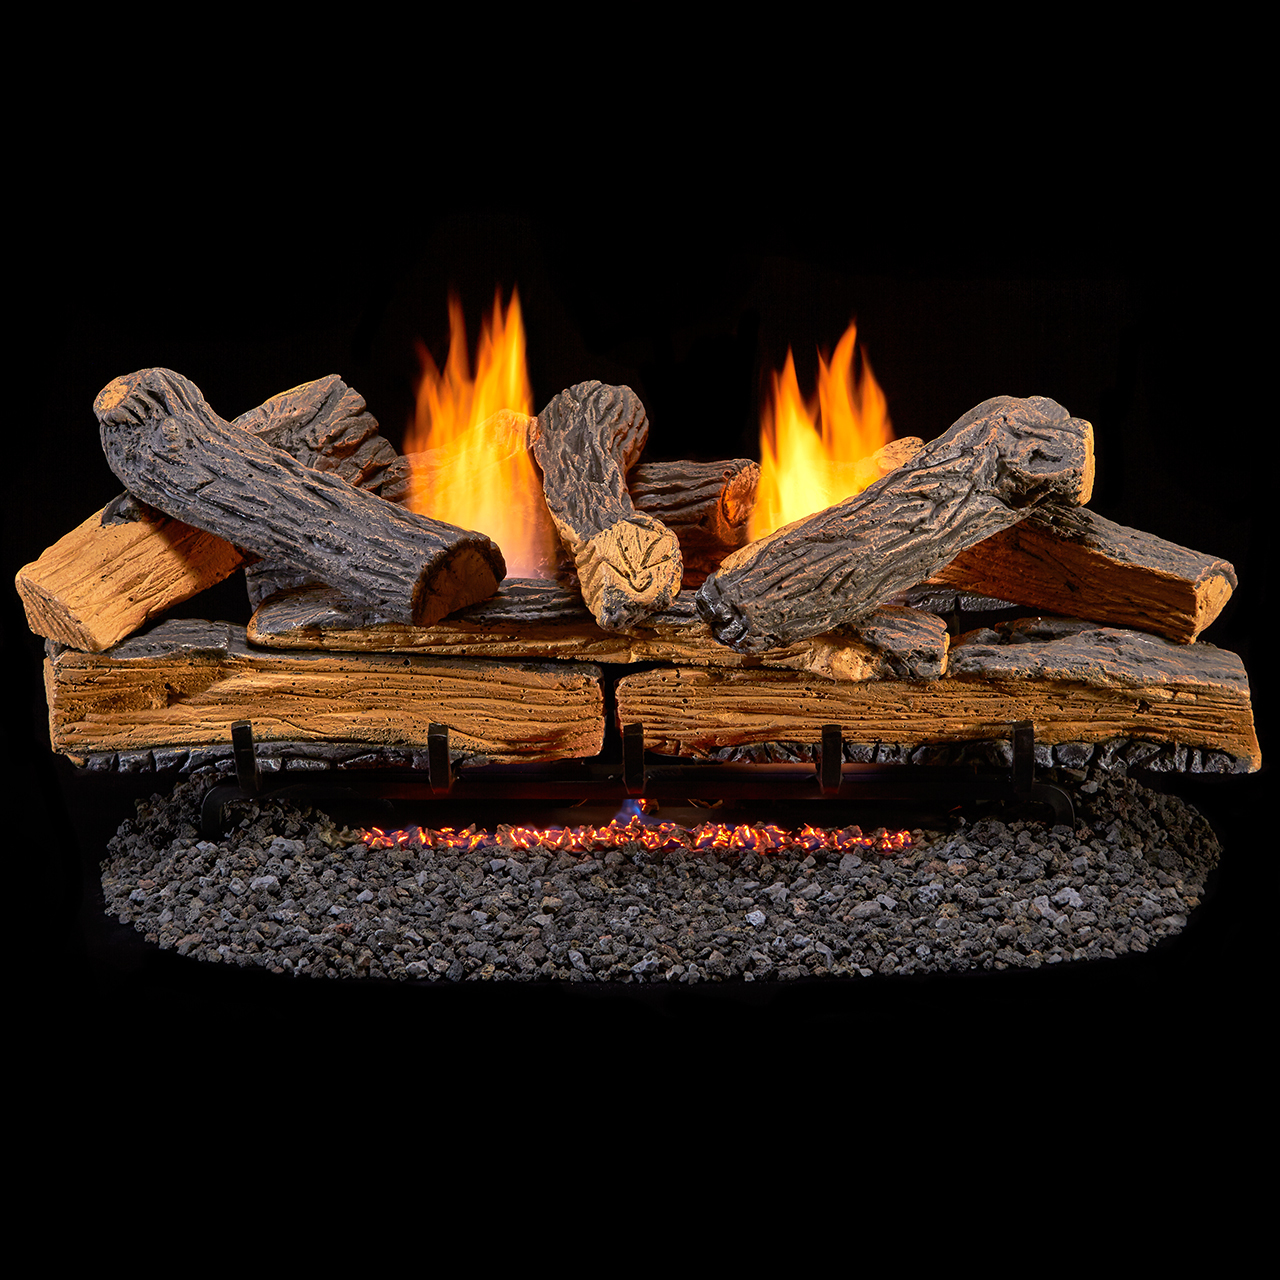 fireplace vent ebay logs set log emberglow free propane gas oakwood thermostat itm fire vented